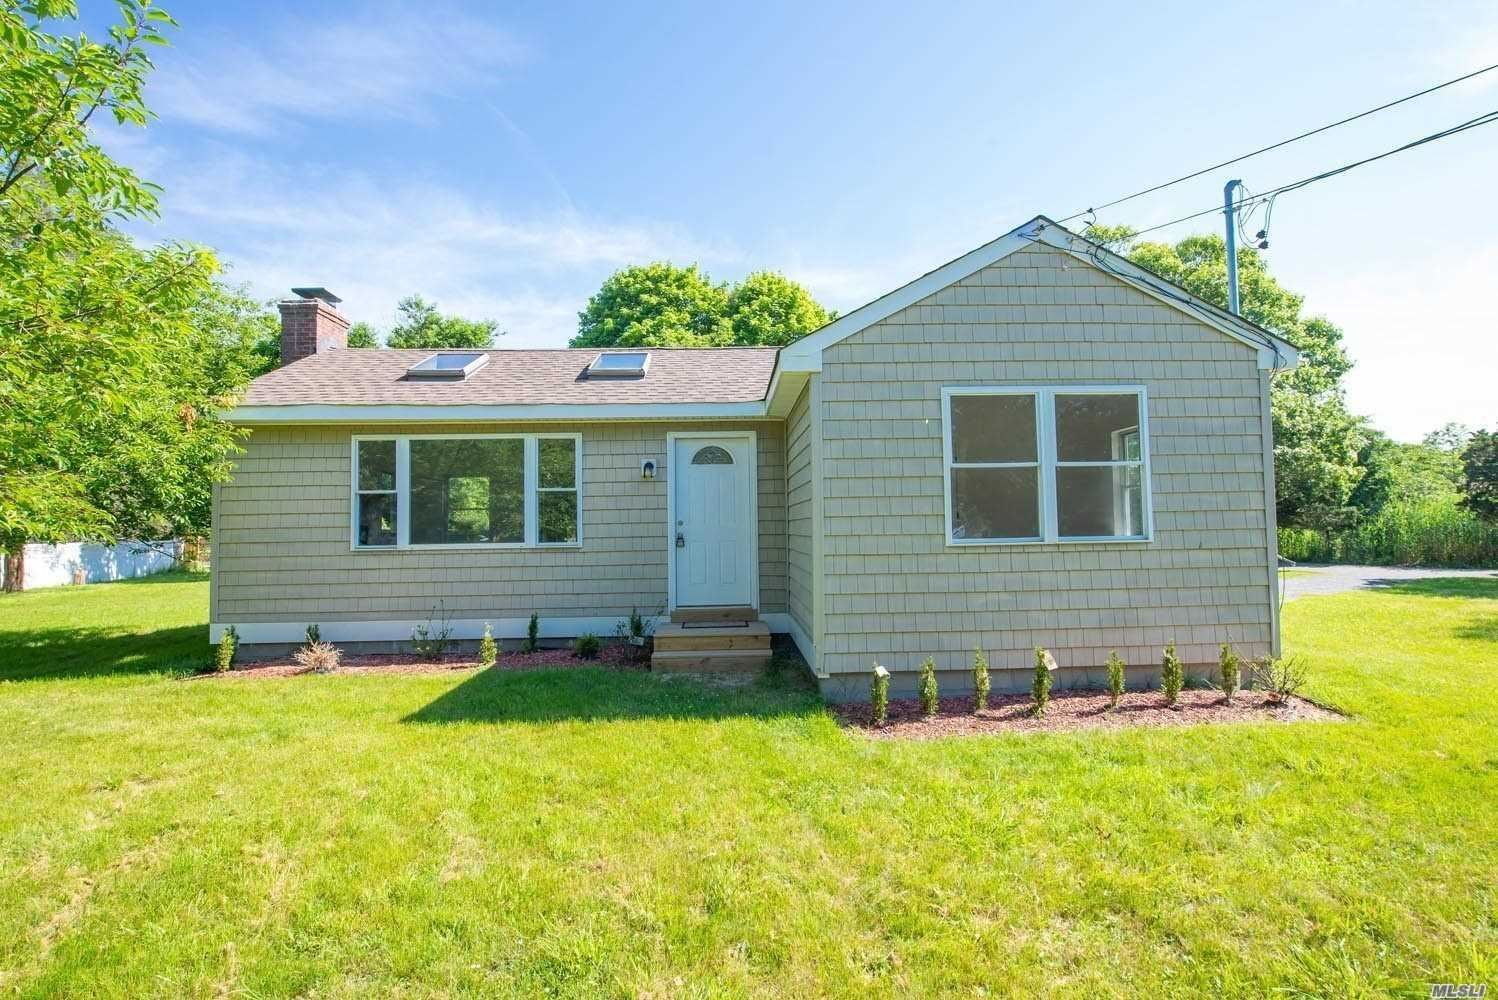 5 South Street, Center Moriches, NY 11934 - MLS#: 3194111